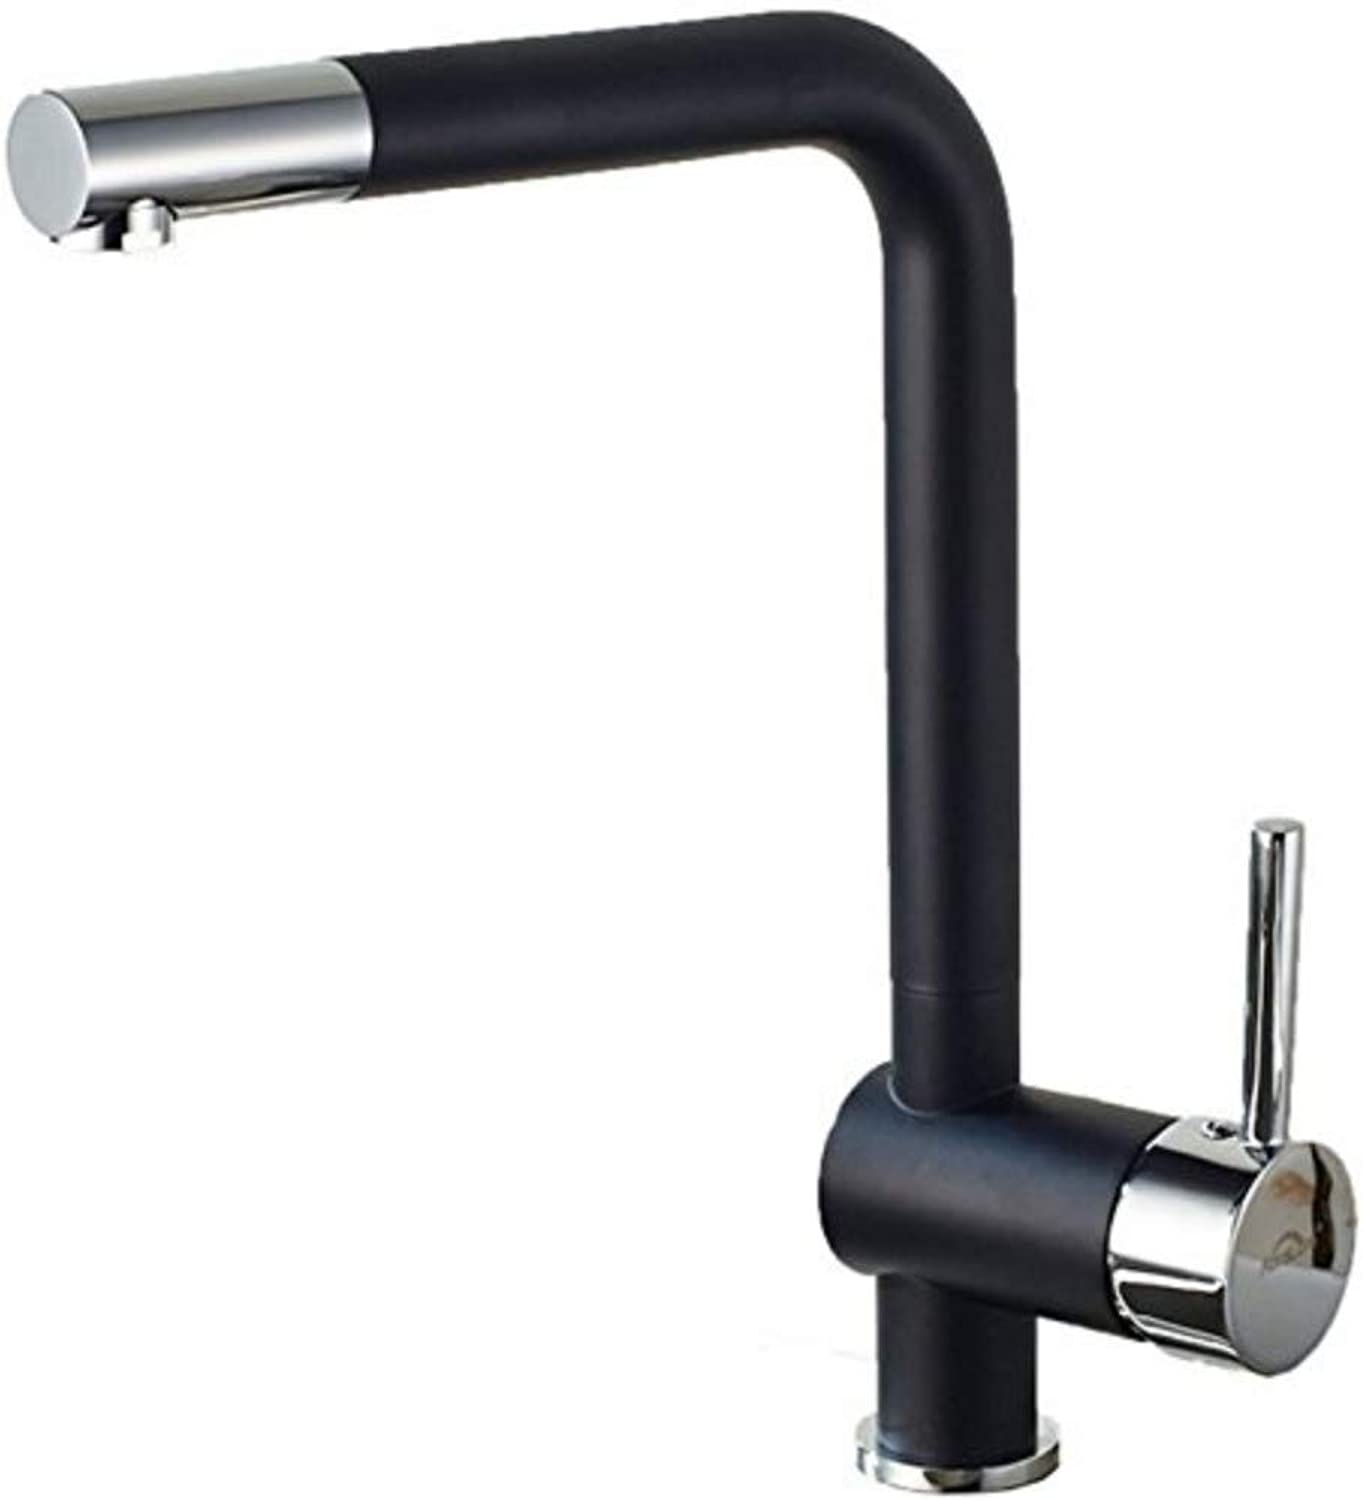 Basin Taps Swivel Spout Faucet Hot and Cold Copper Taps Universal redary Vegetable Basin Sink Faucet